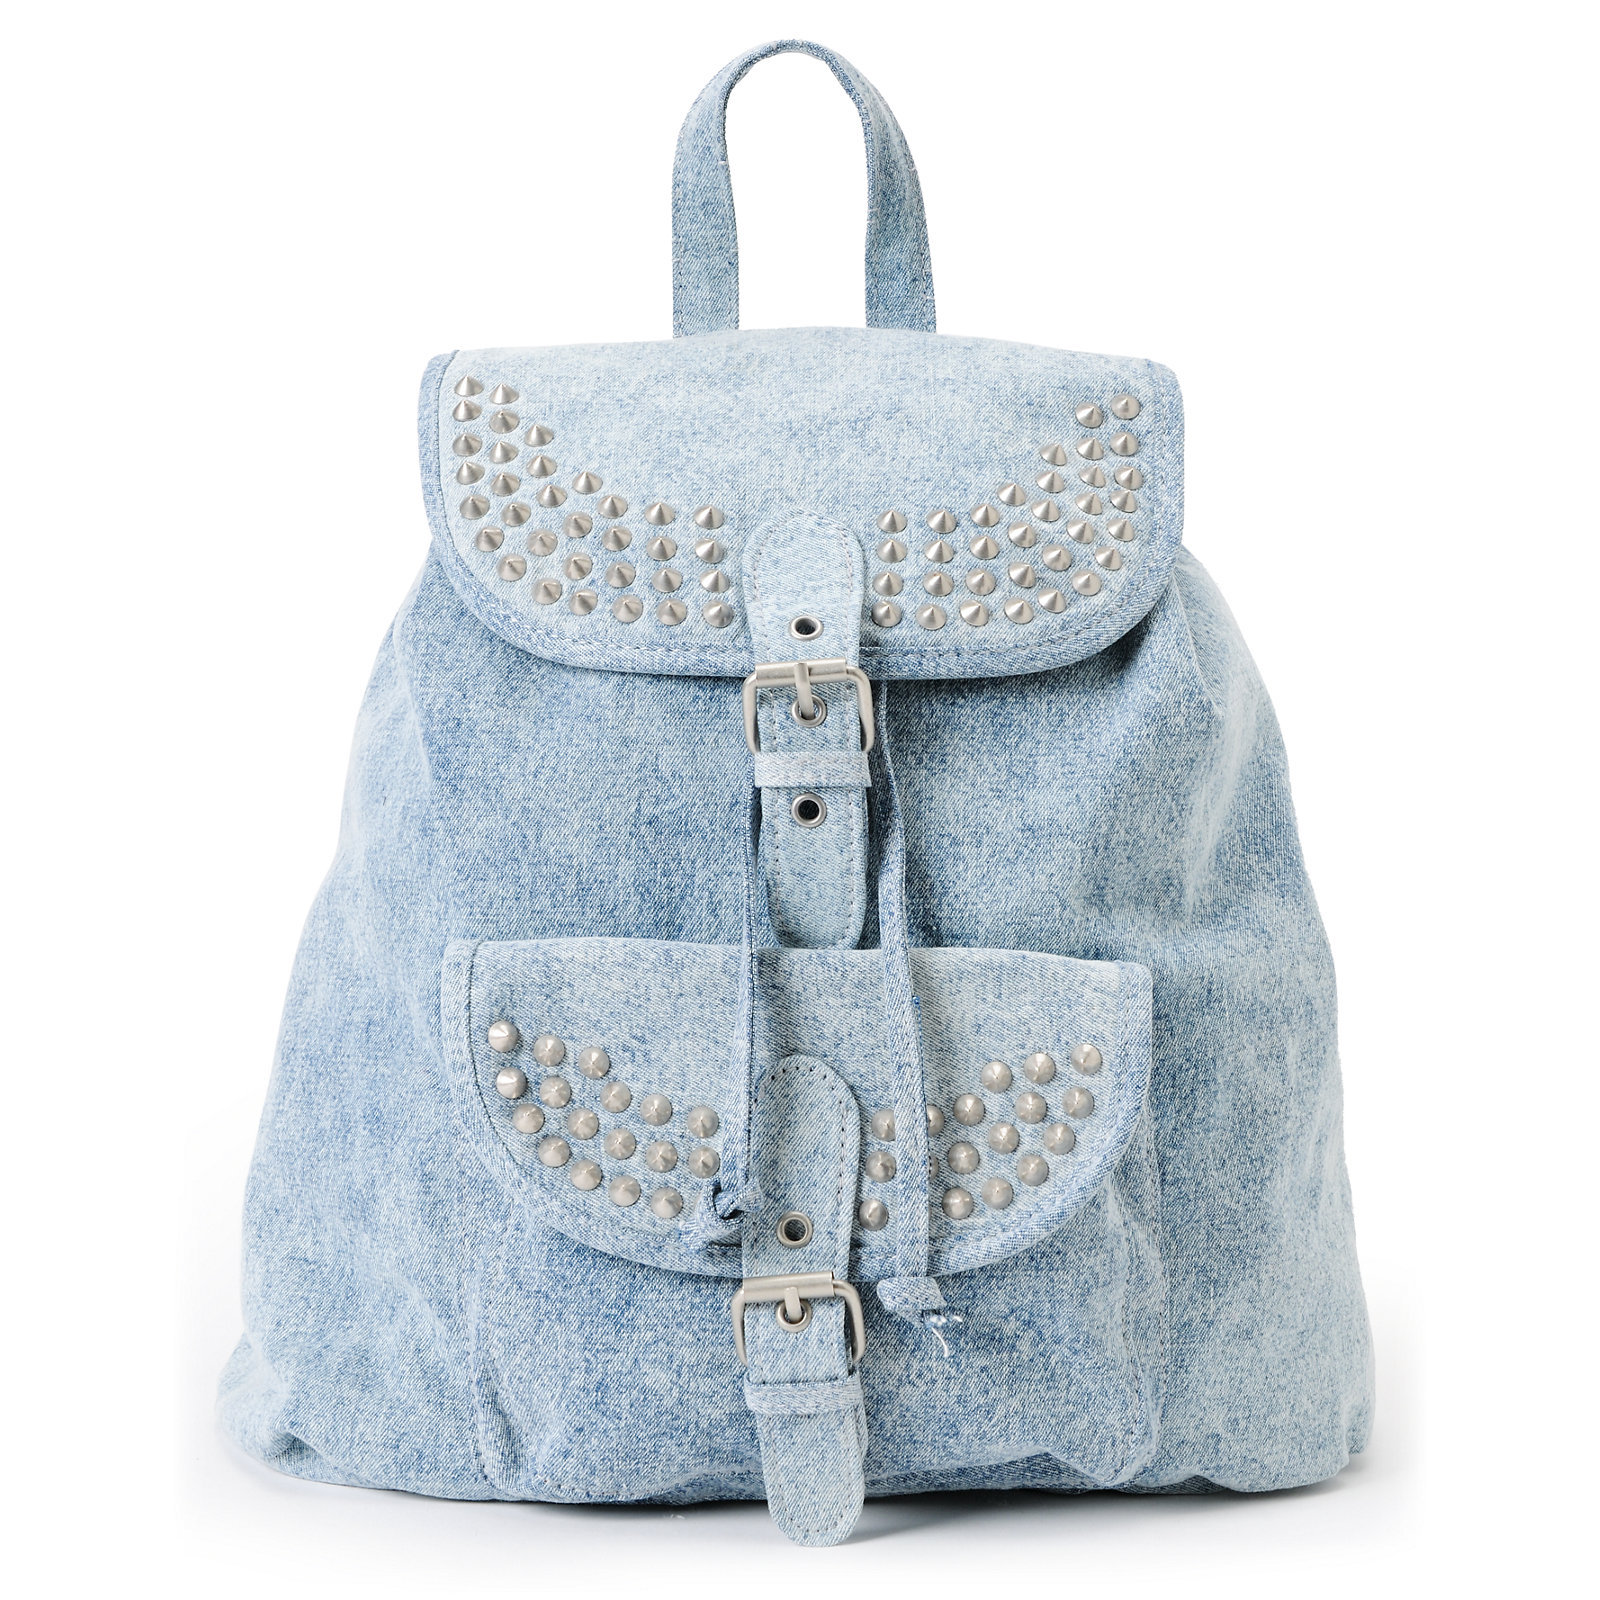 T-Shirt & Jeans Acid Wash Denim Studded Rucksack Backpack on Wanelo